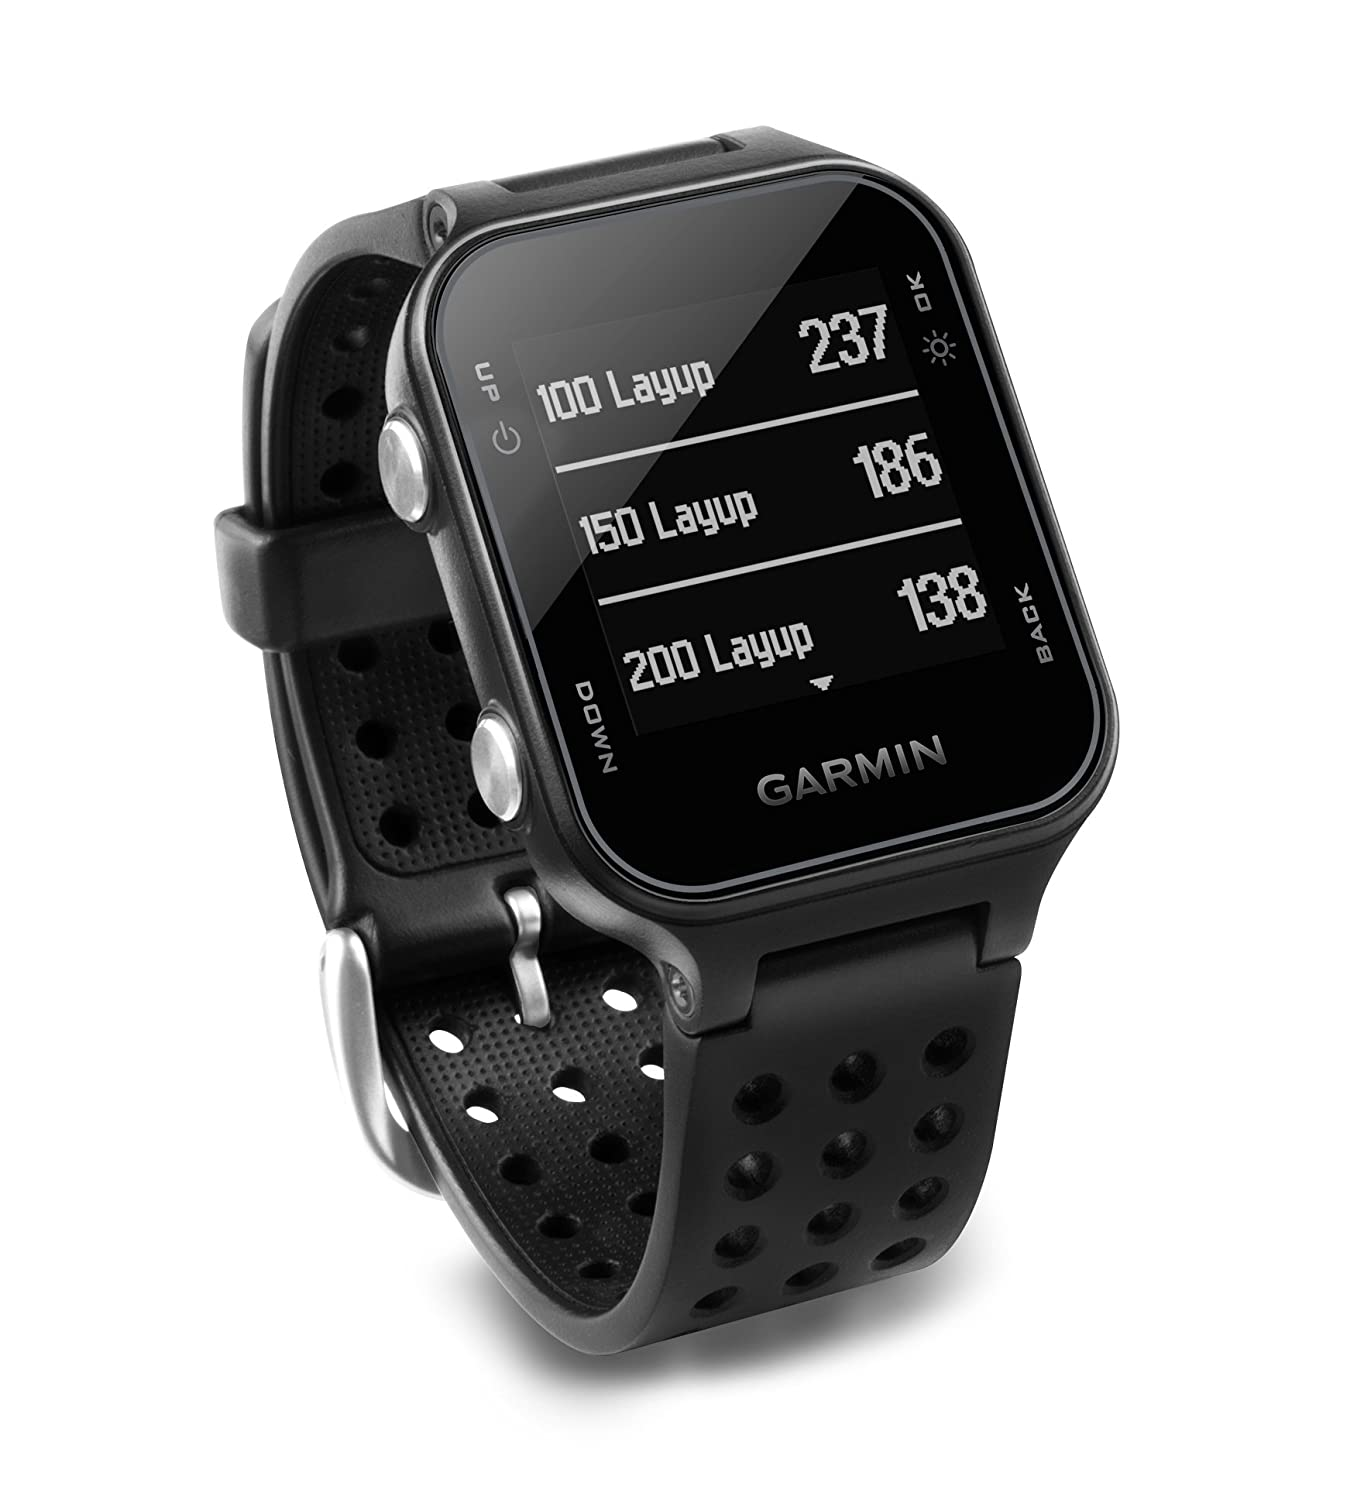 The Best golf watch - Our pick